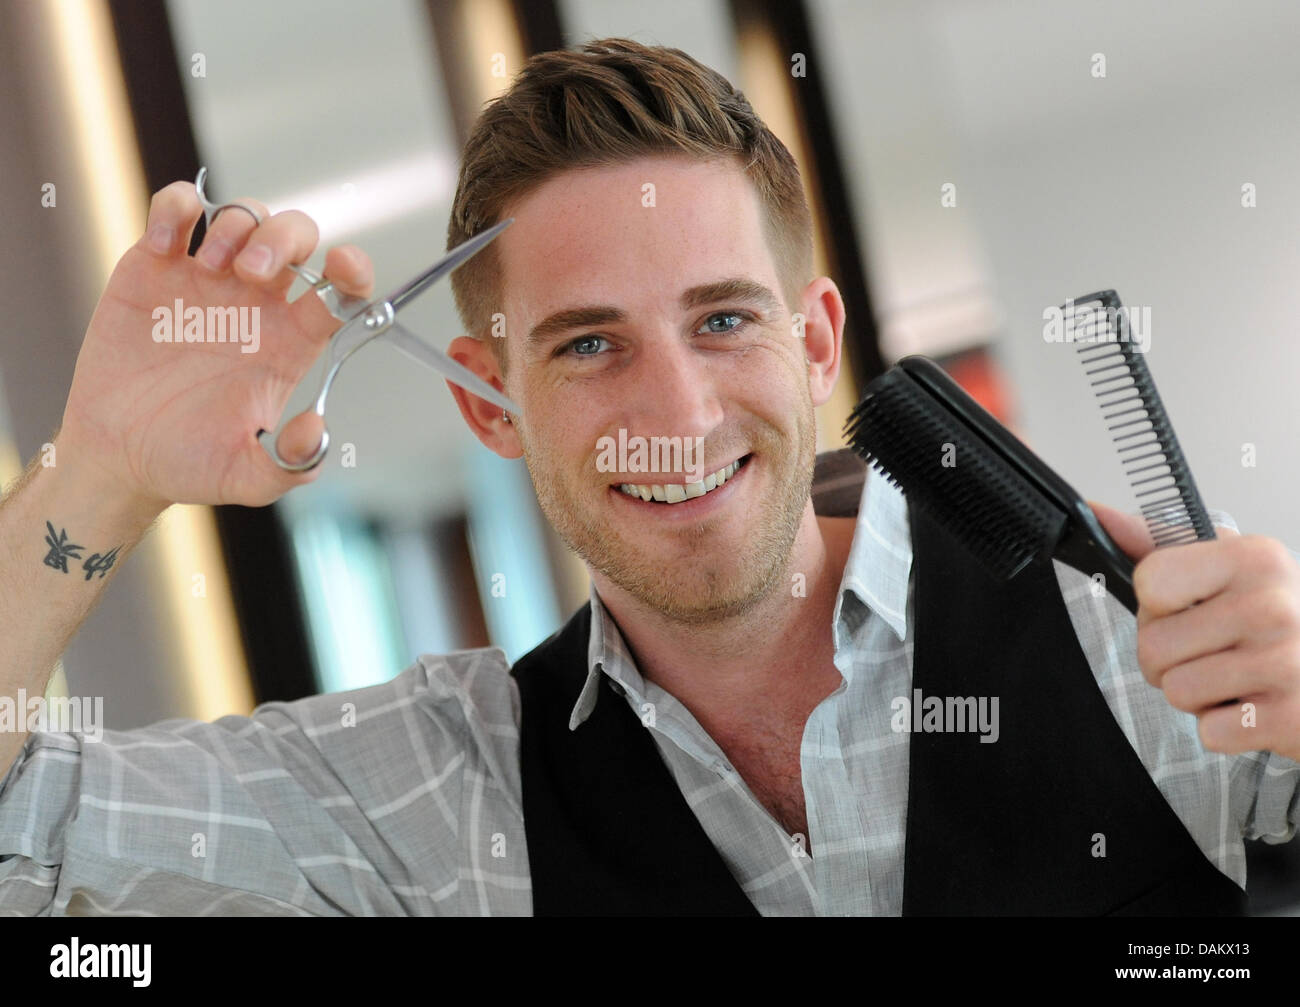 hair stylist dennis creuzberg is pictured at work in berlin germany stock photo royalty free. Black Bedroom Furniture Sets. Home Design Ideas